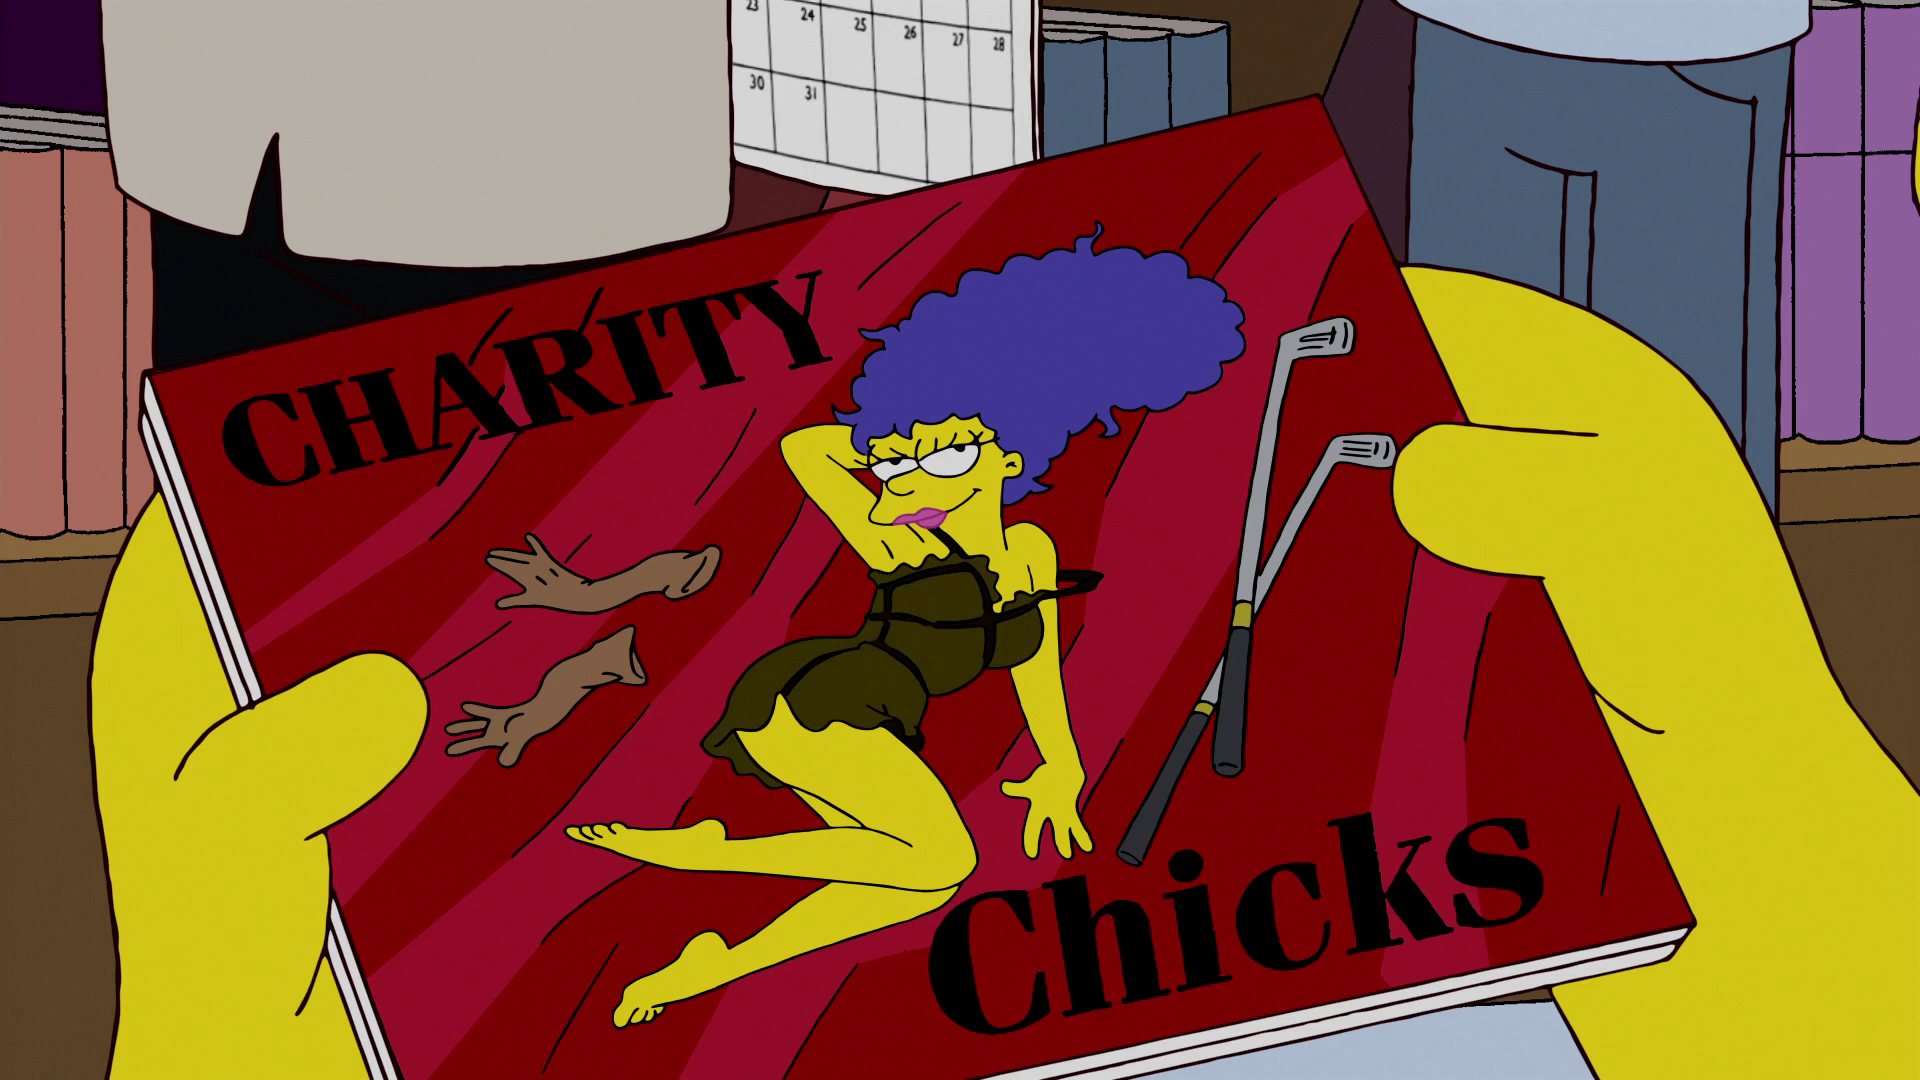 Charity Chicks.png